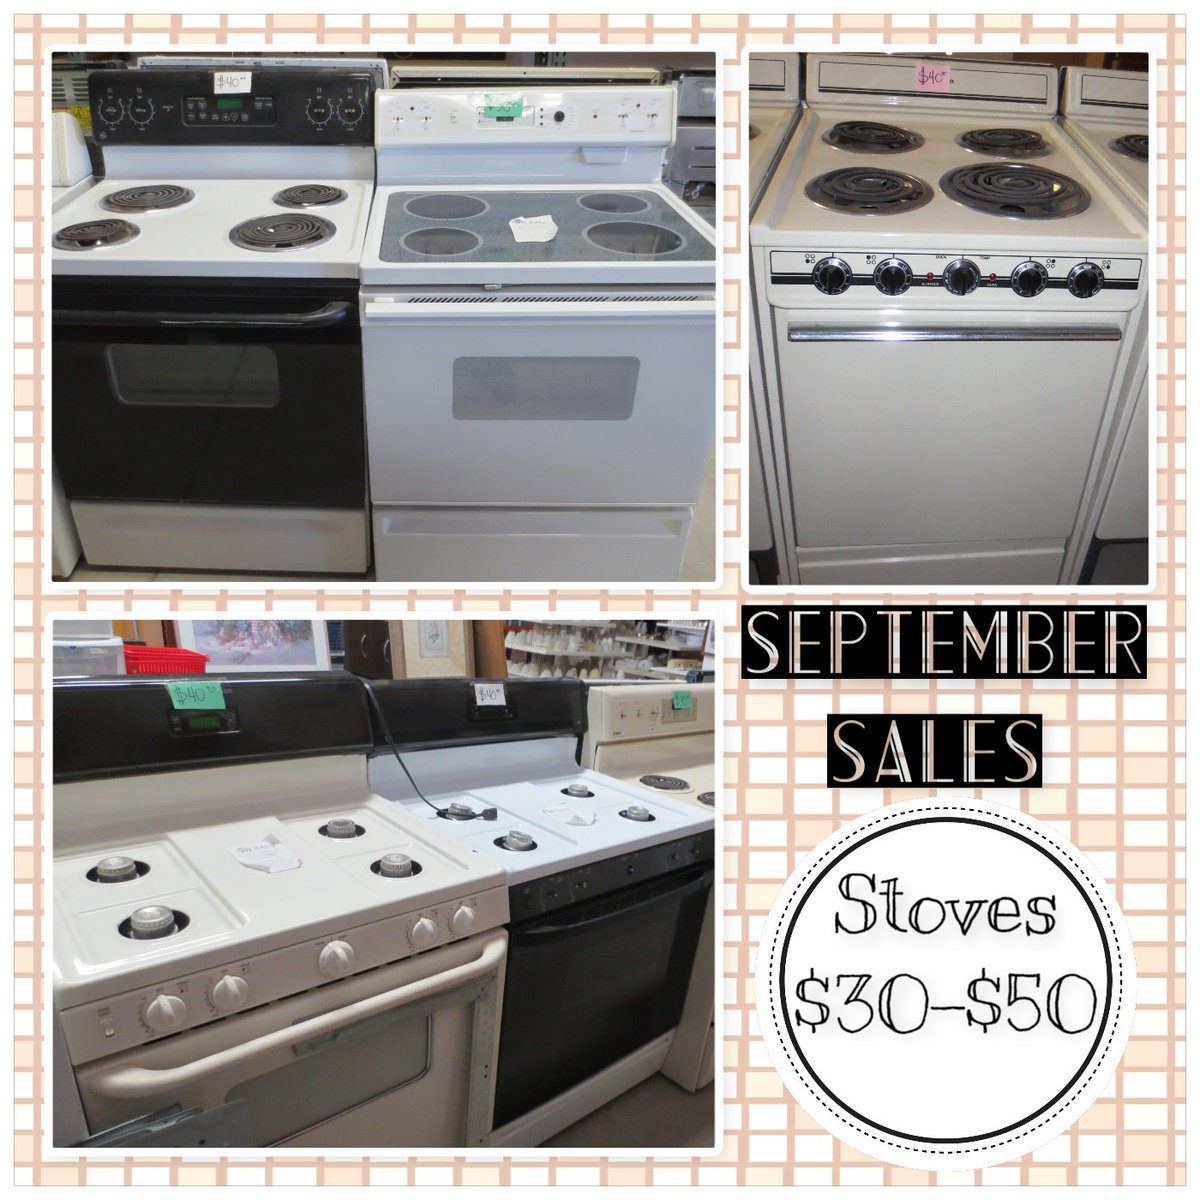 Yuma Habitat On Twitter Prices Are Dropping Here At The Restore Check Out This Months Sales On Both Gas And Electric Stoves Ranging From 30 50 Yuma Hfhy Https T Co Q7ulcafdtx